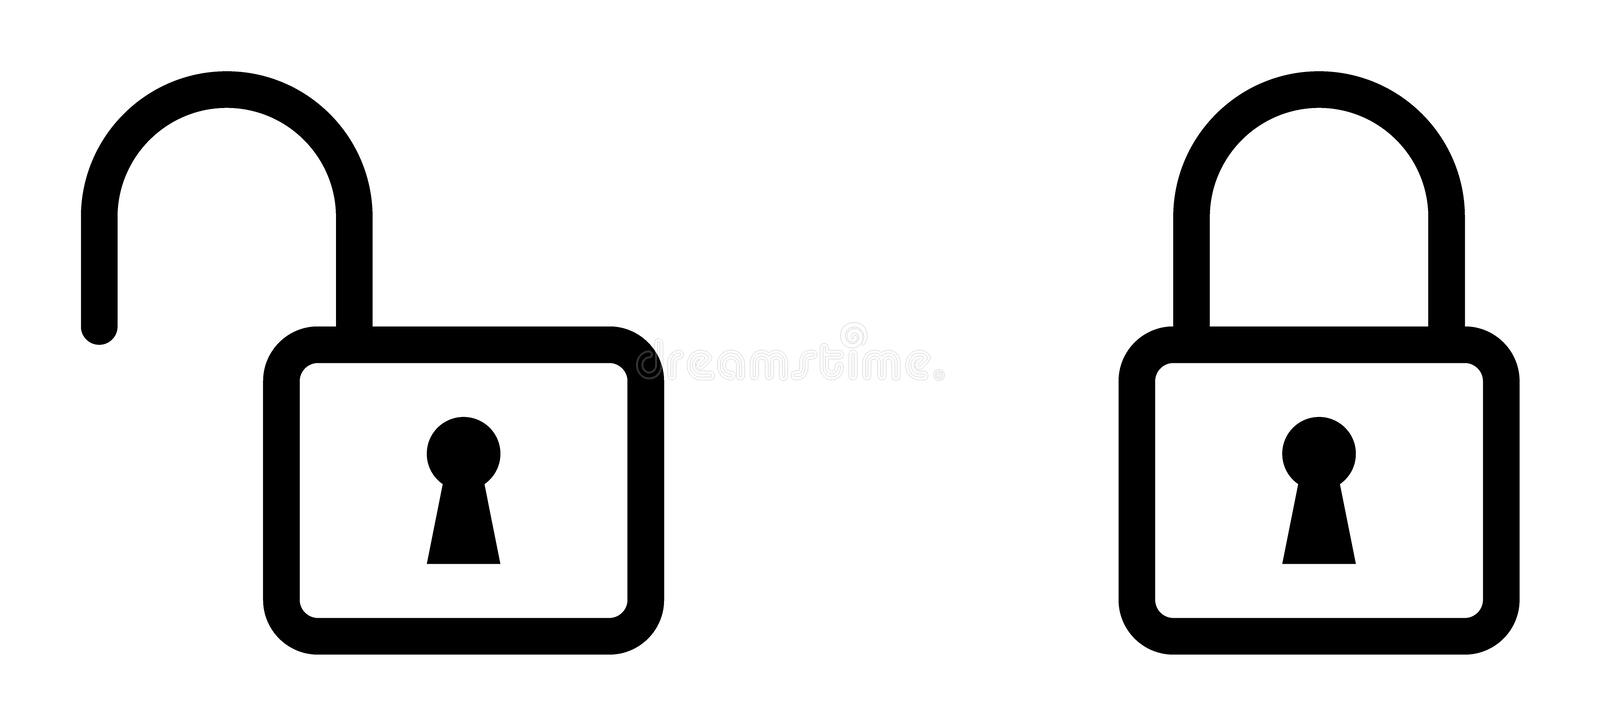 Outlined: Lock Icon - Symbol royalty free stock photos